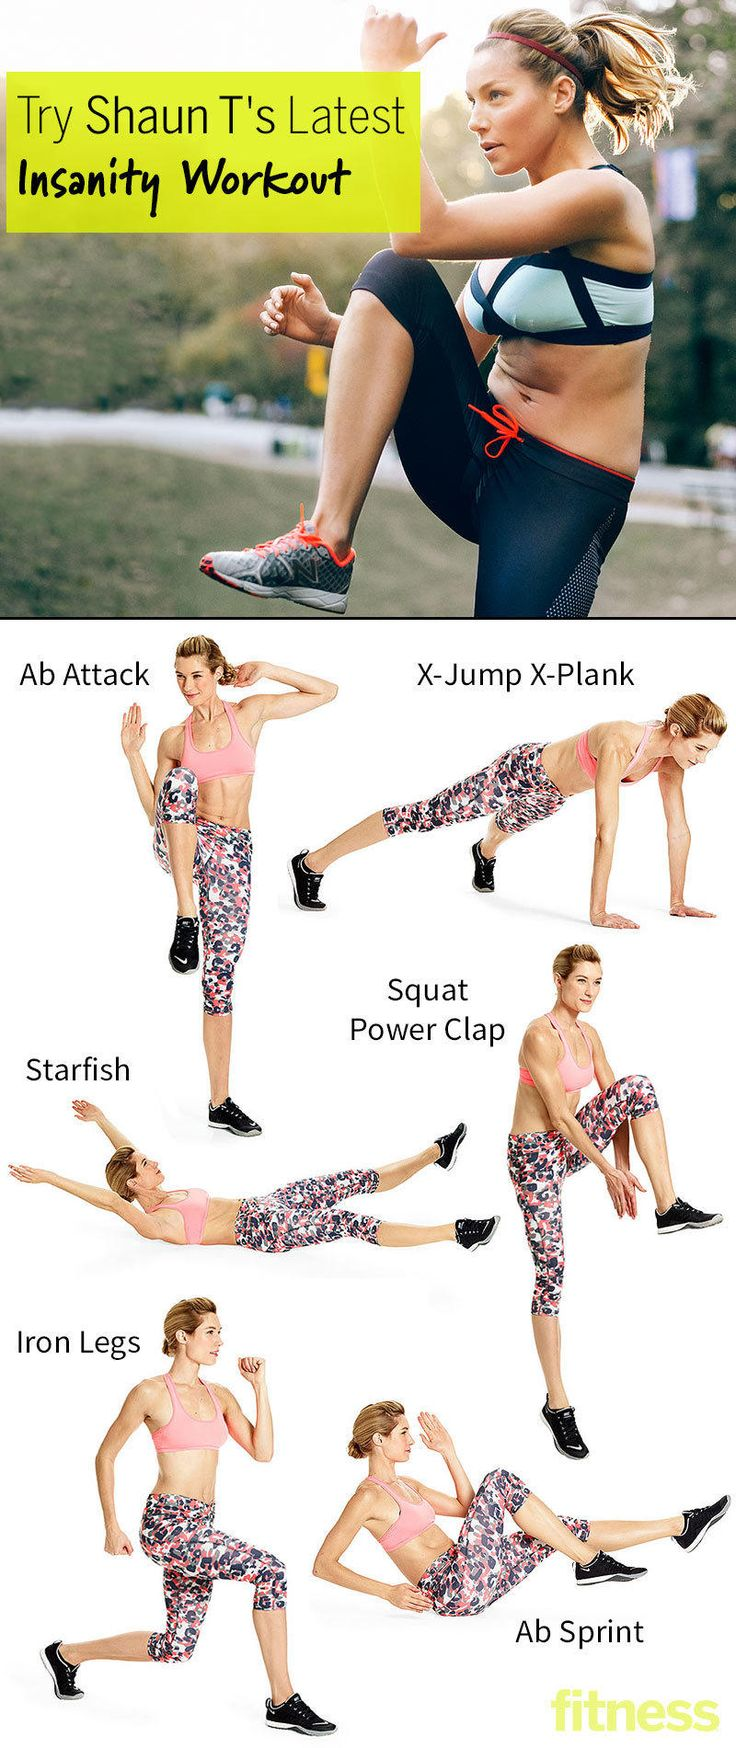 A sneak peek at Shaun T's new, no-equipment Insanity Max:30 workout routine.